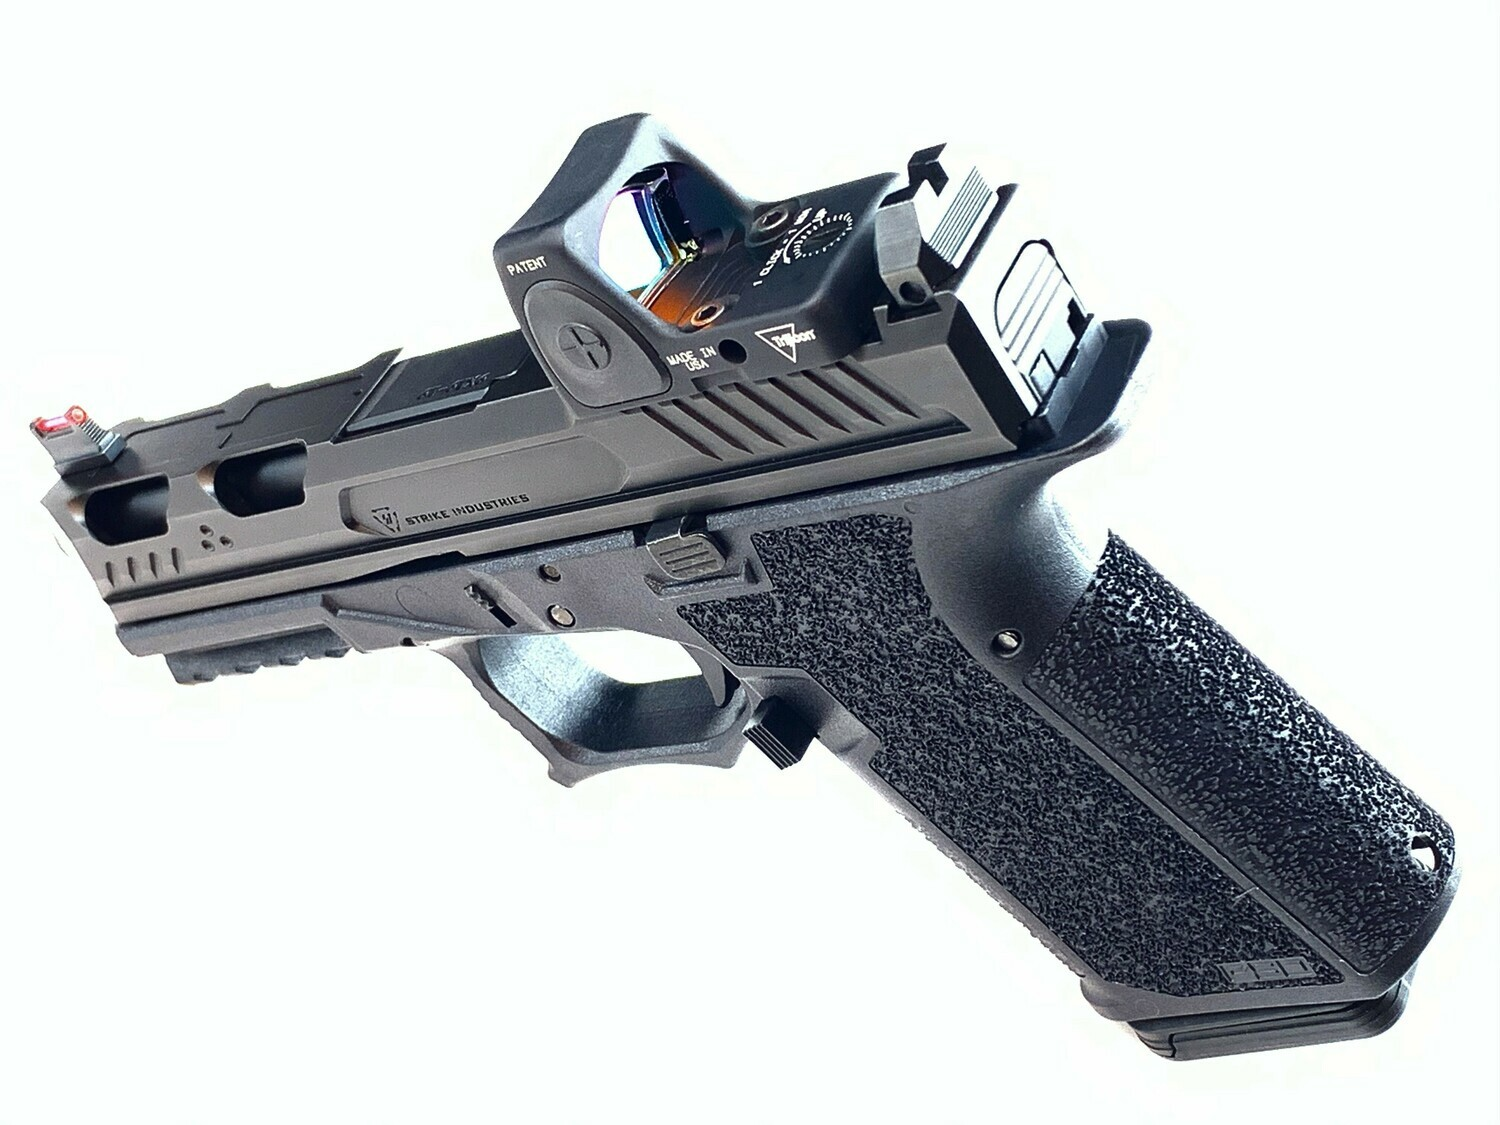 Strike Industries ARK 80% G19 Custom 9mm Pistol Build Kit- Trijicon RMR - Suppressor Sights